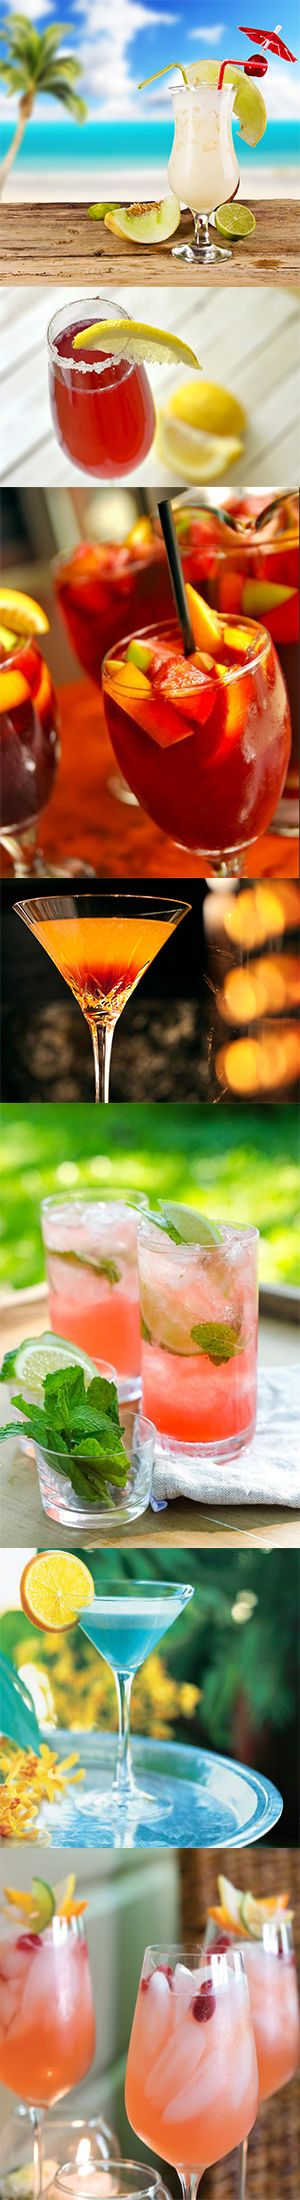 10 Famouse Bartender Recipes – Part 4 – Daily Update - Make The Famous Bartender Recipes From The Best Bartenders In The World !